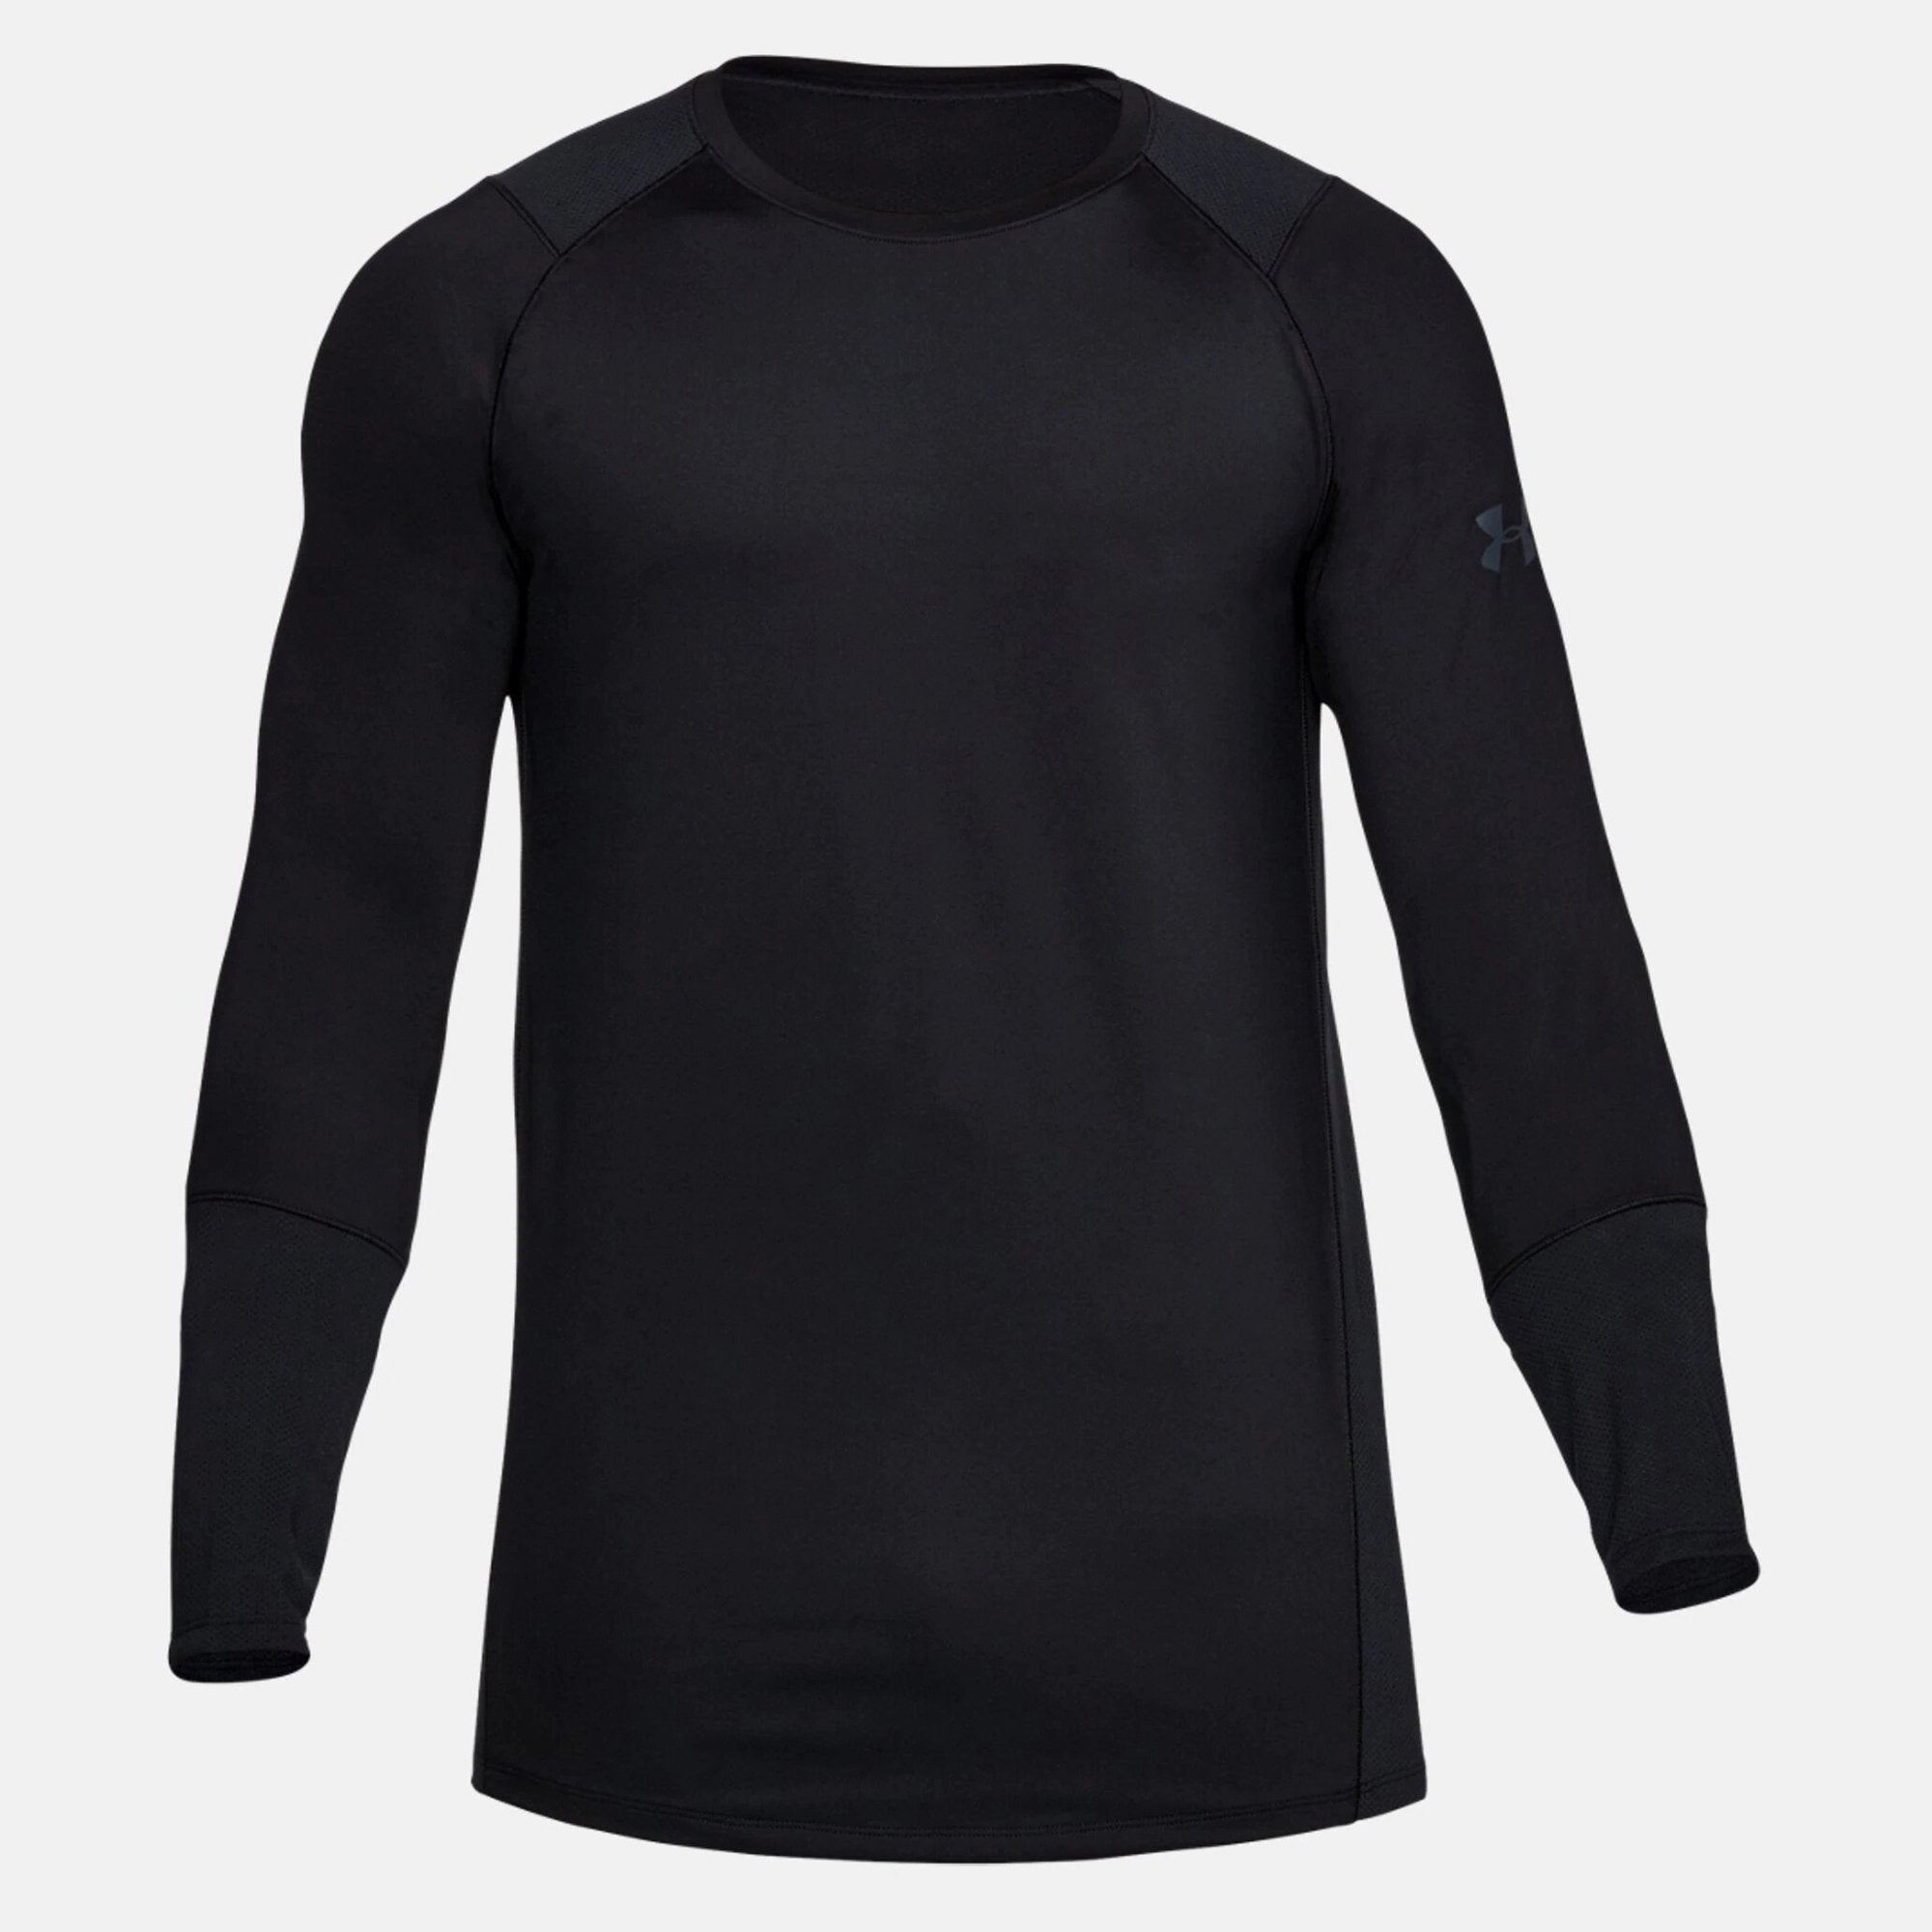 7f8a2f0d98 Buy Under Armour Men MK-1 Long Sleeve T-Shirt Online in Singapore | Royal  Sporting House